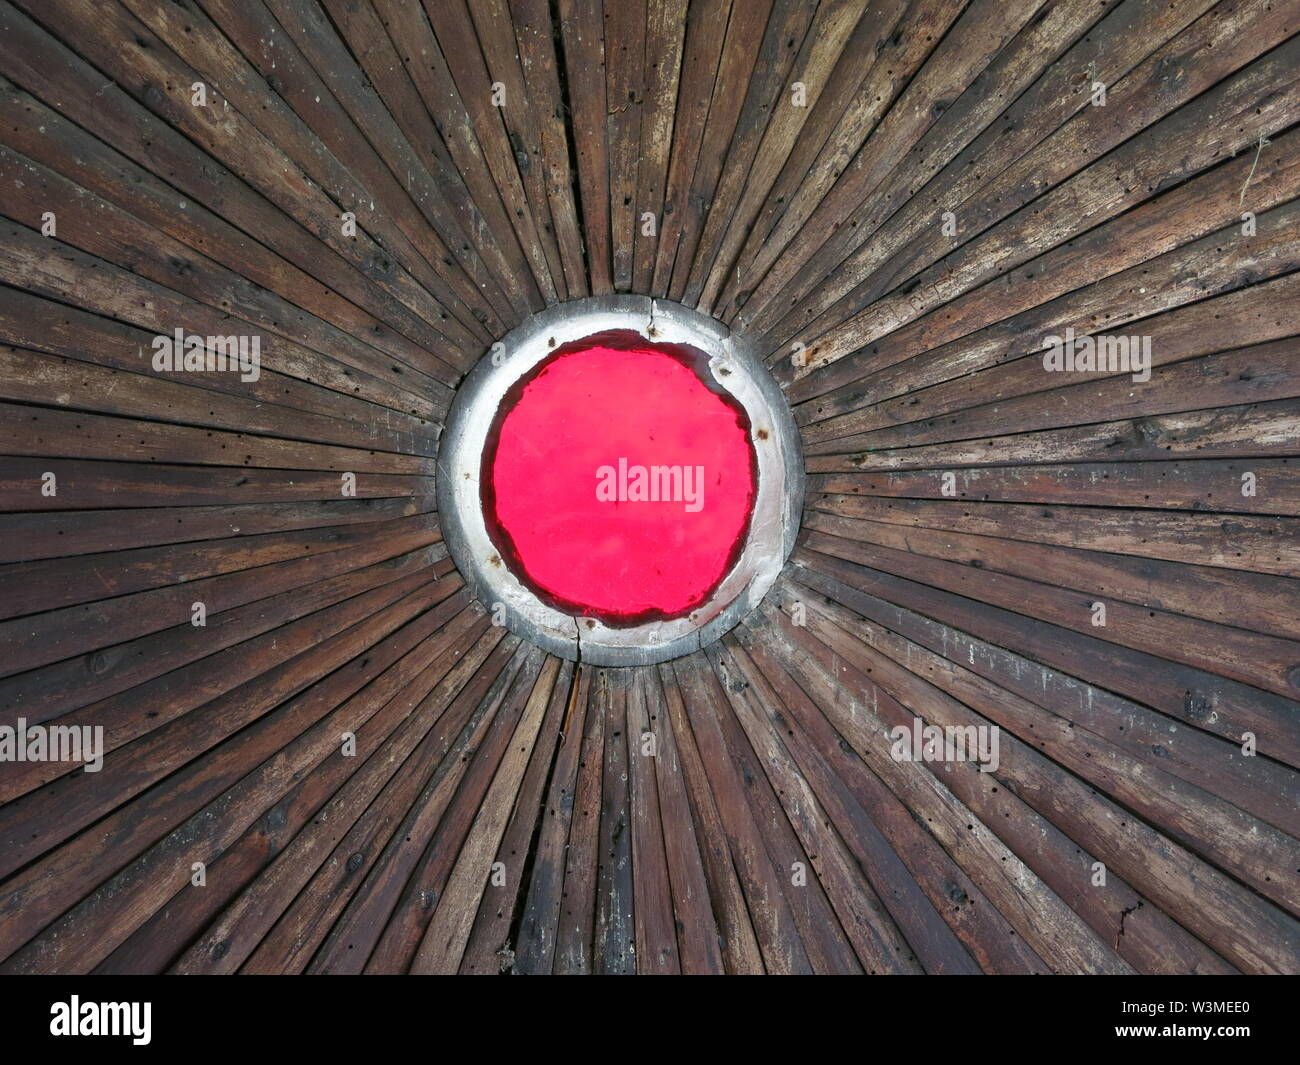 Bull's Eye: abstract image of a red circle with a white circumference, surrounded by wooden spokes radiating like the sun - Stock Image